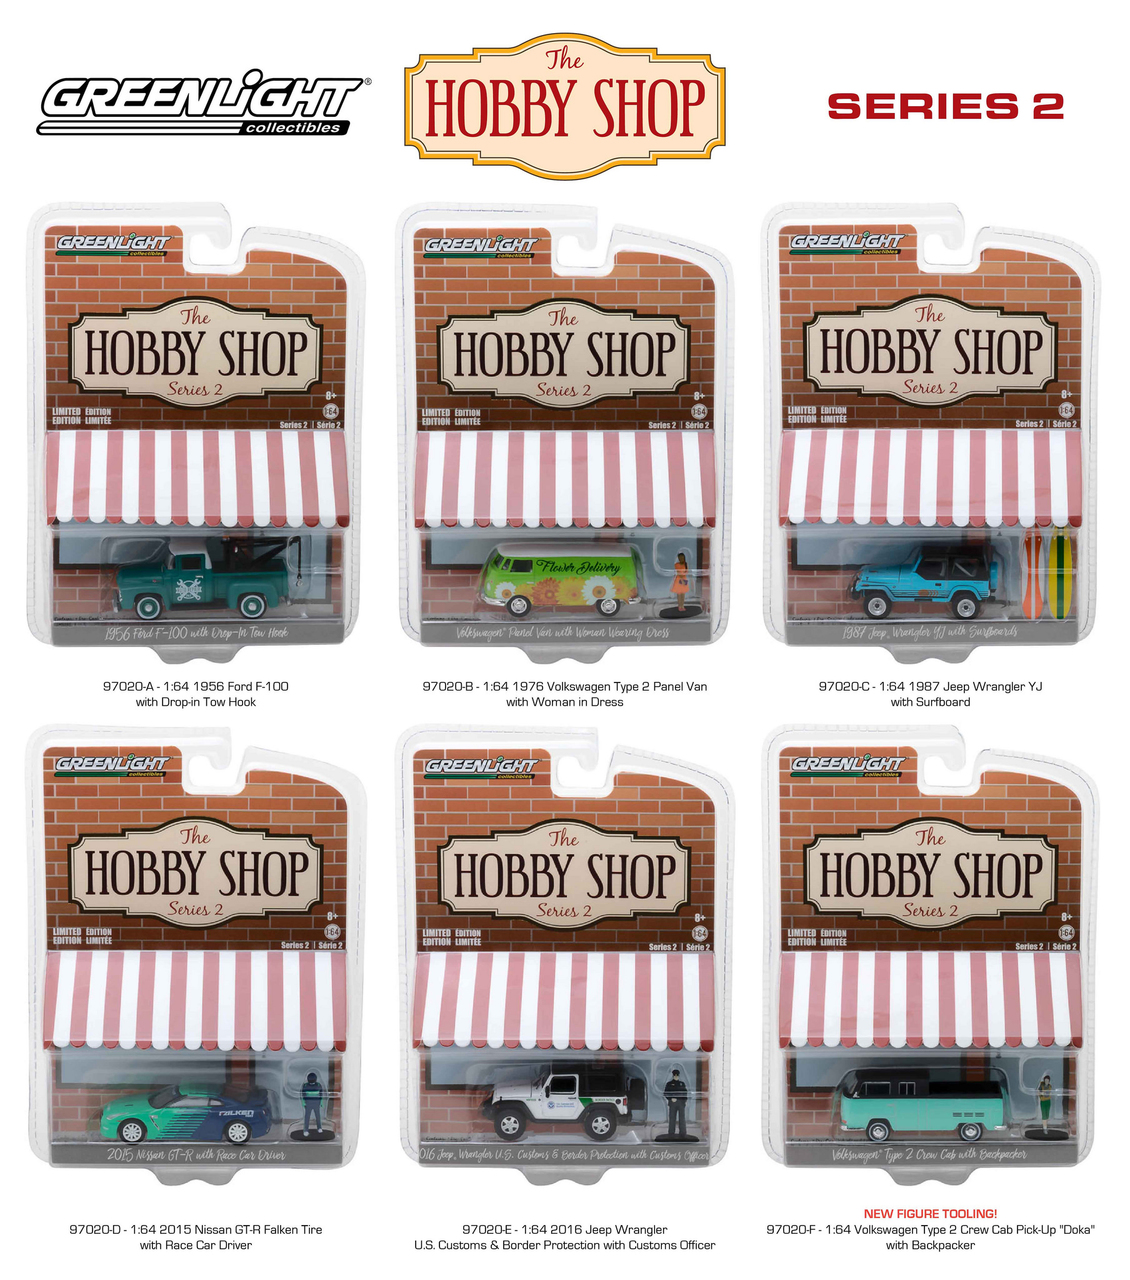 The Hobby Shop Series 2 6pc Set 1/64 Diecast Model Cars by Greenlight